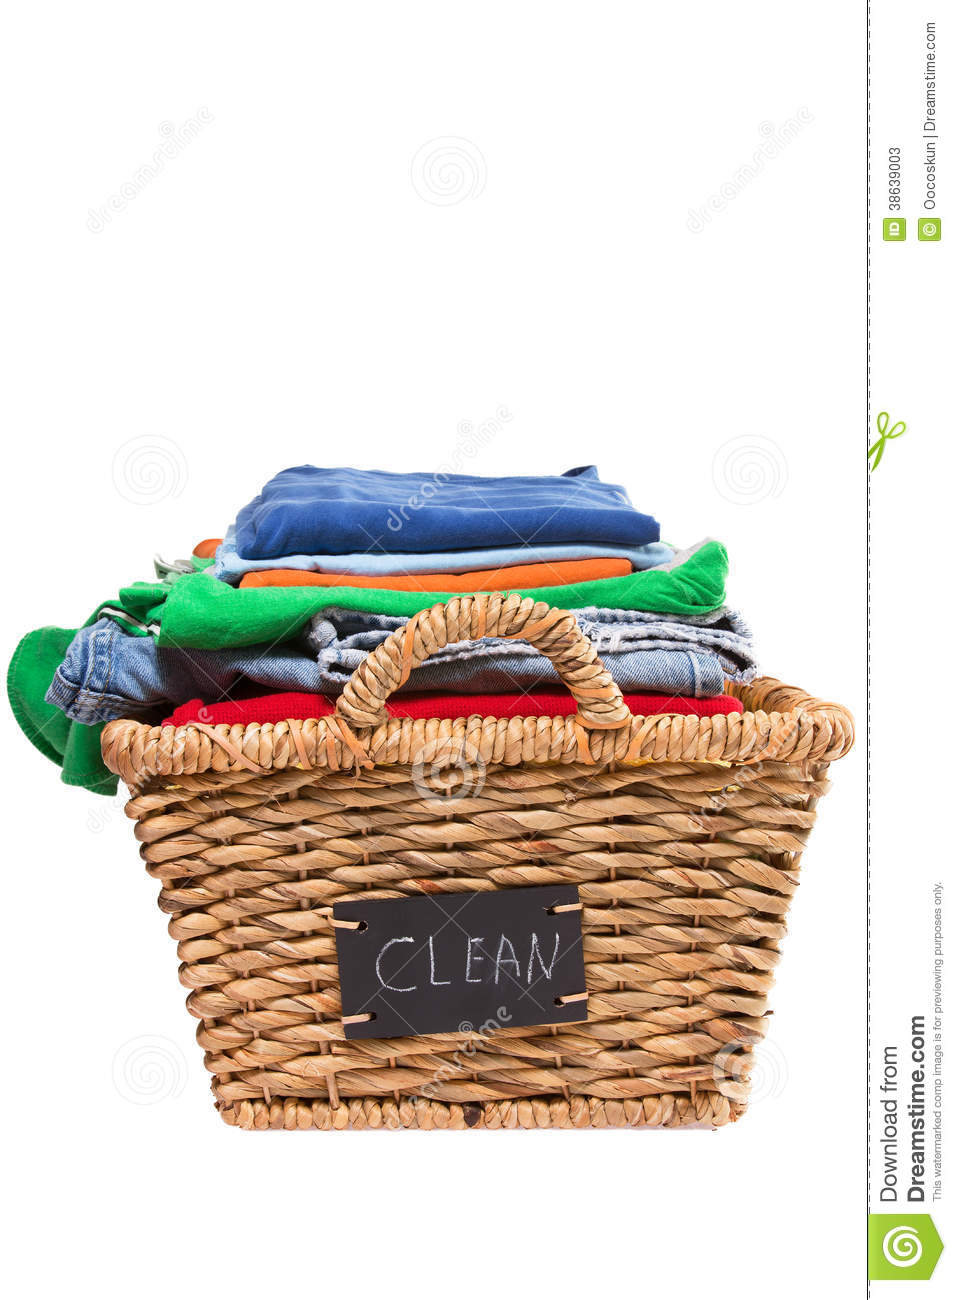 Wicker Laundry Basket Filled With Clean Clothes Stock